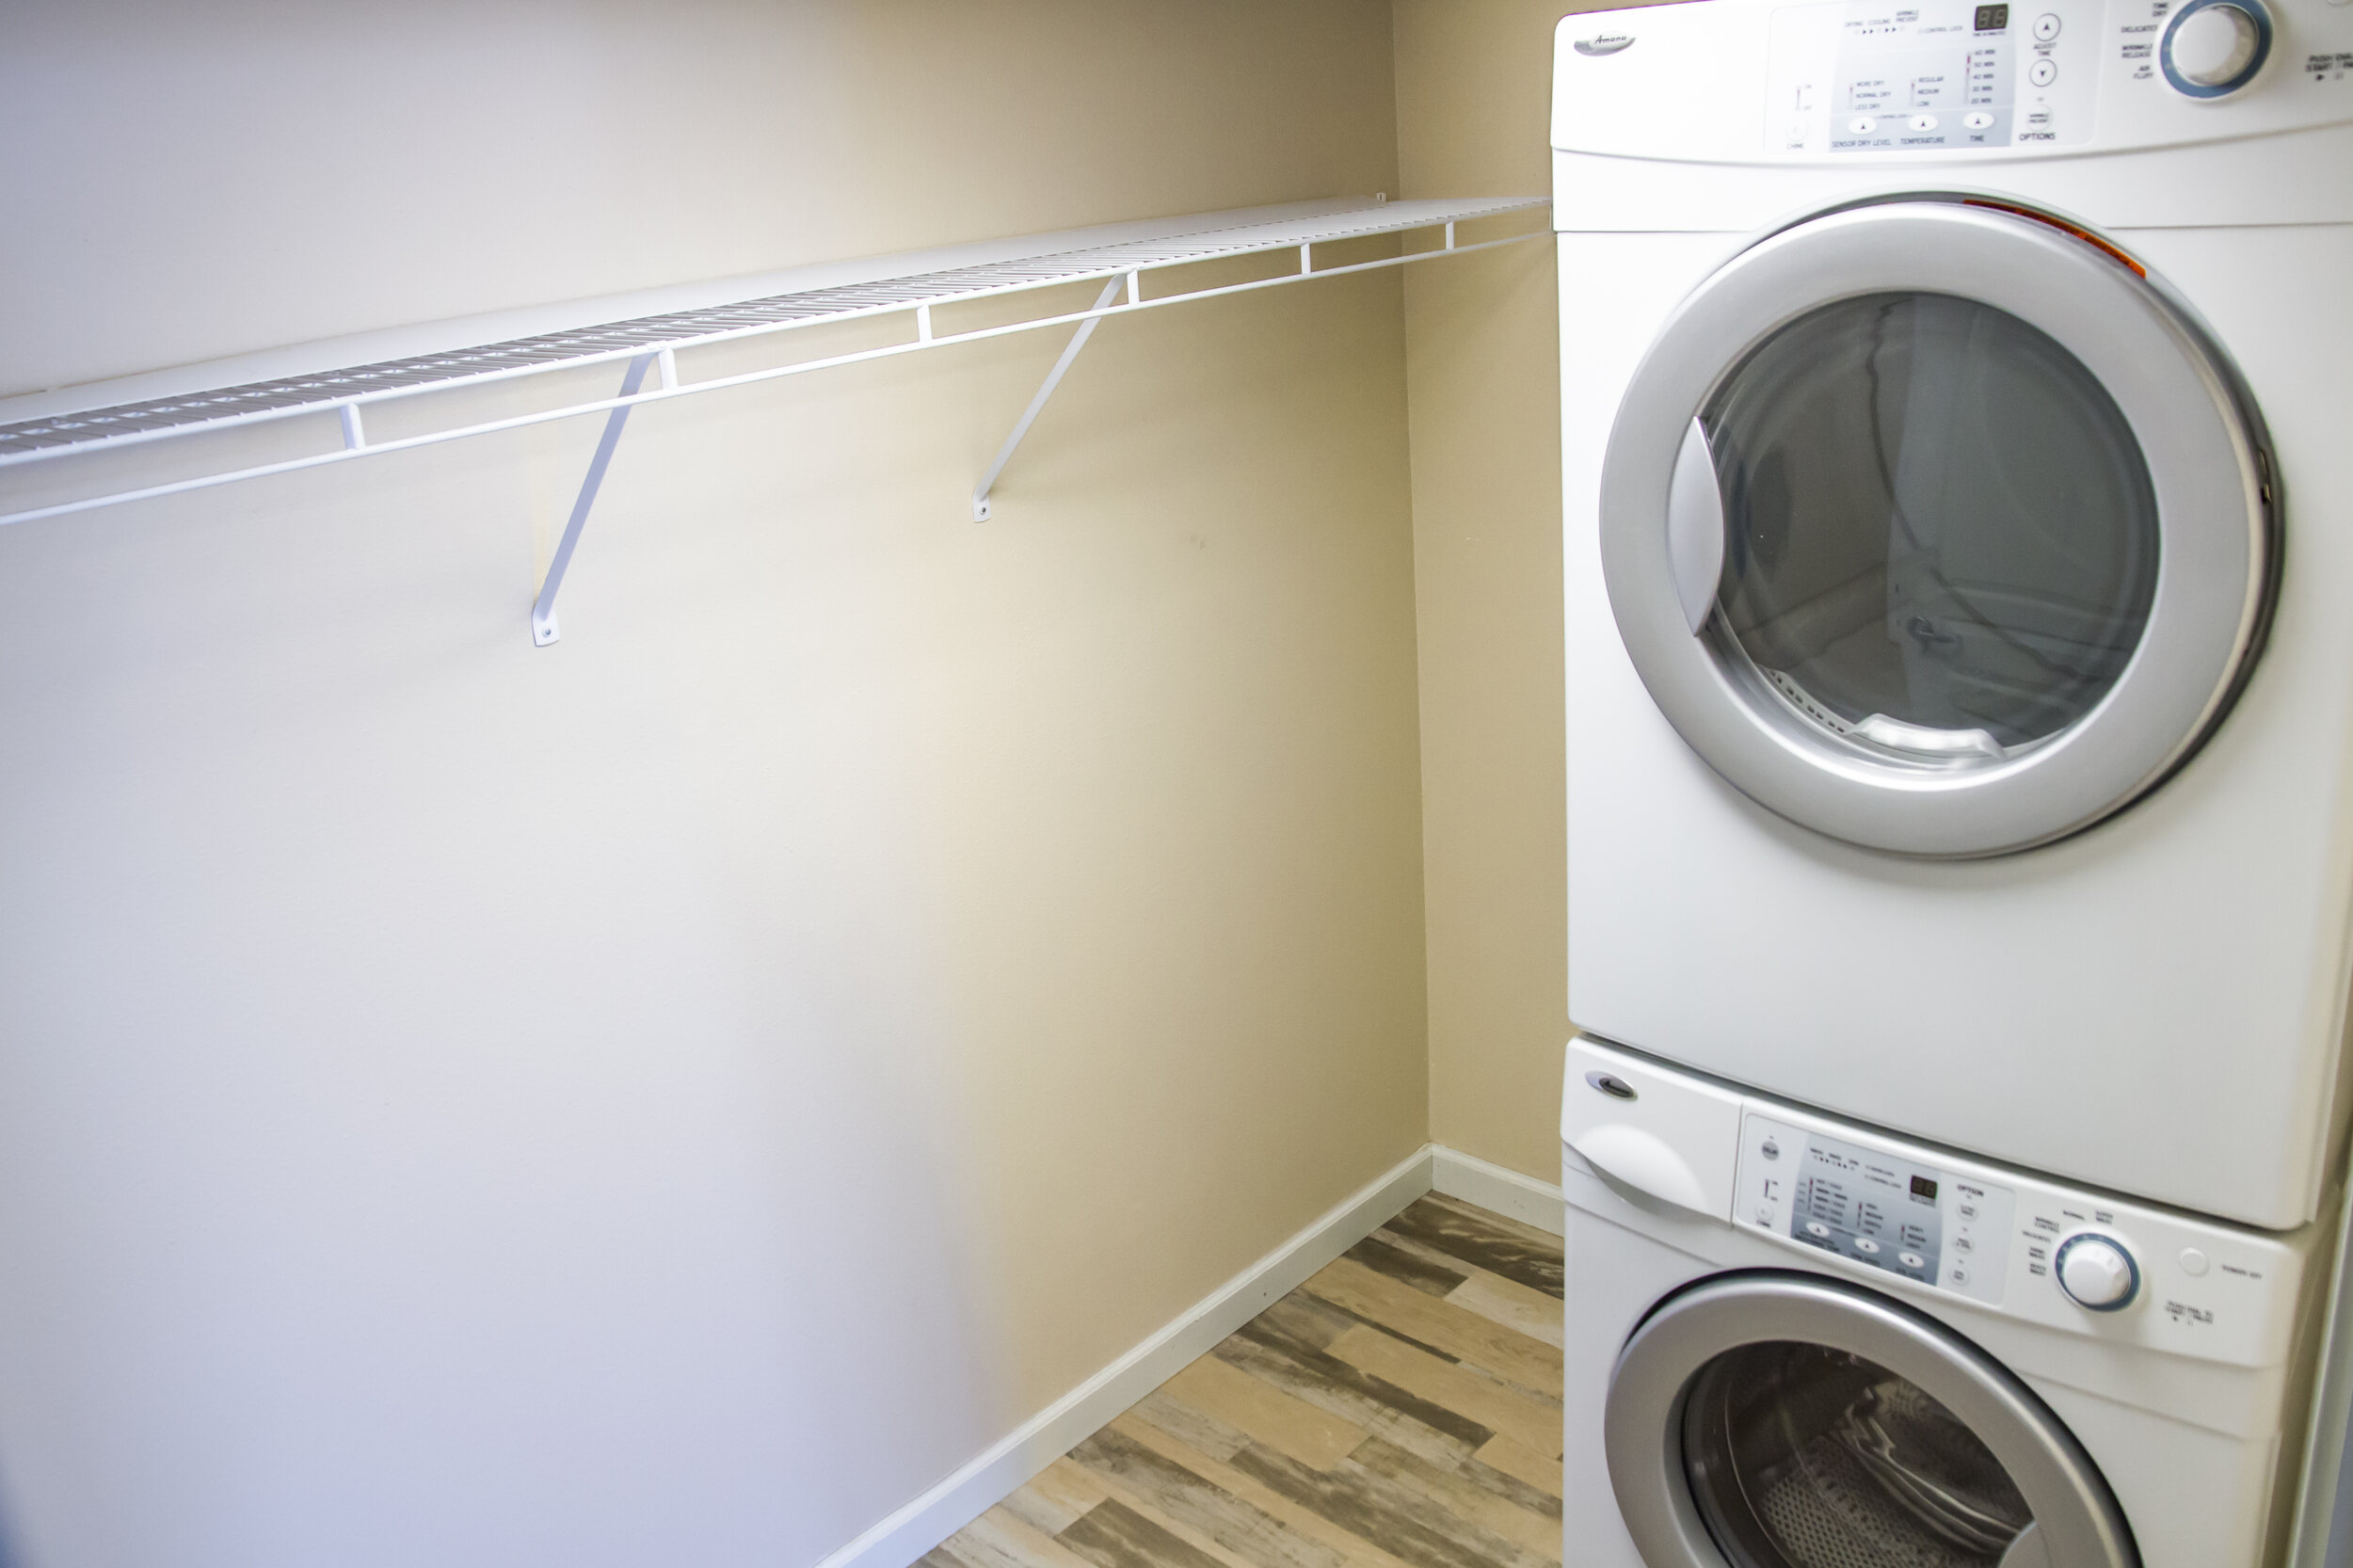 05 In-Home Washer and Dryers.jpg